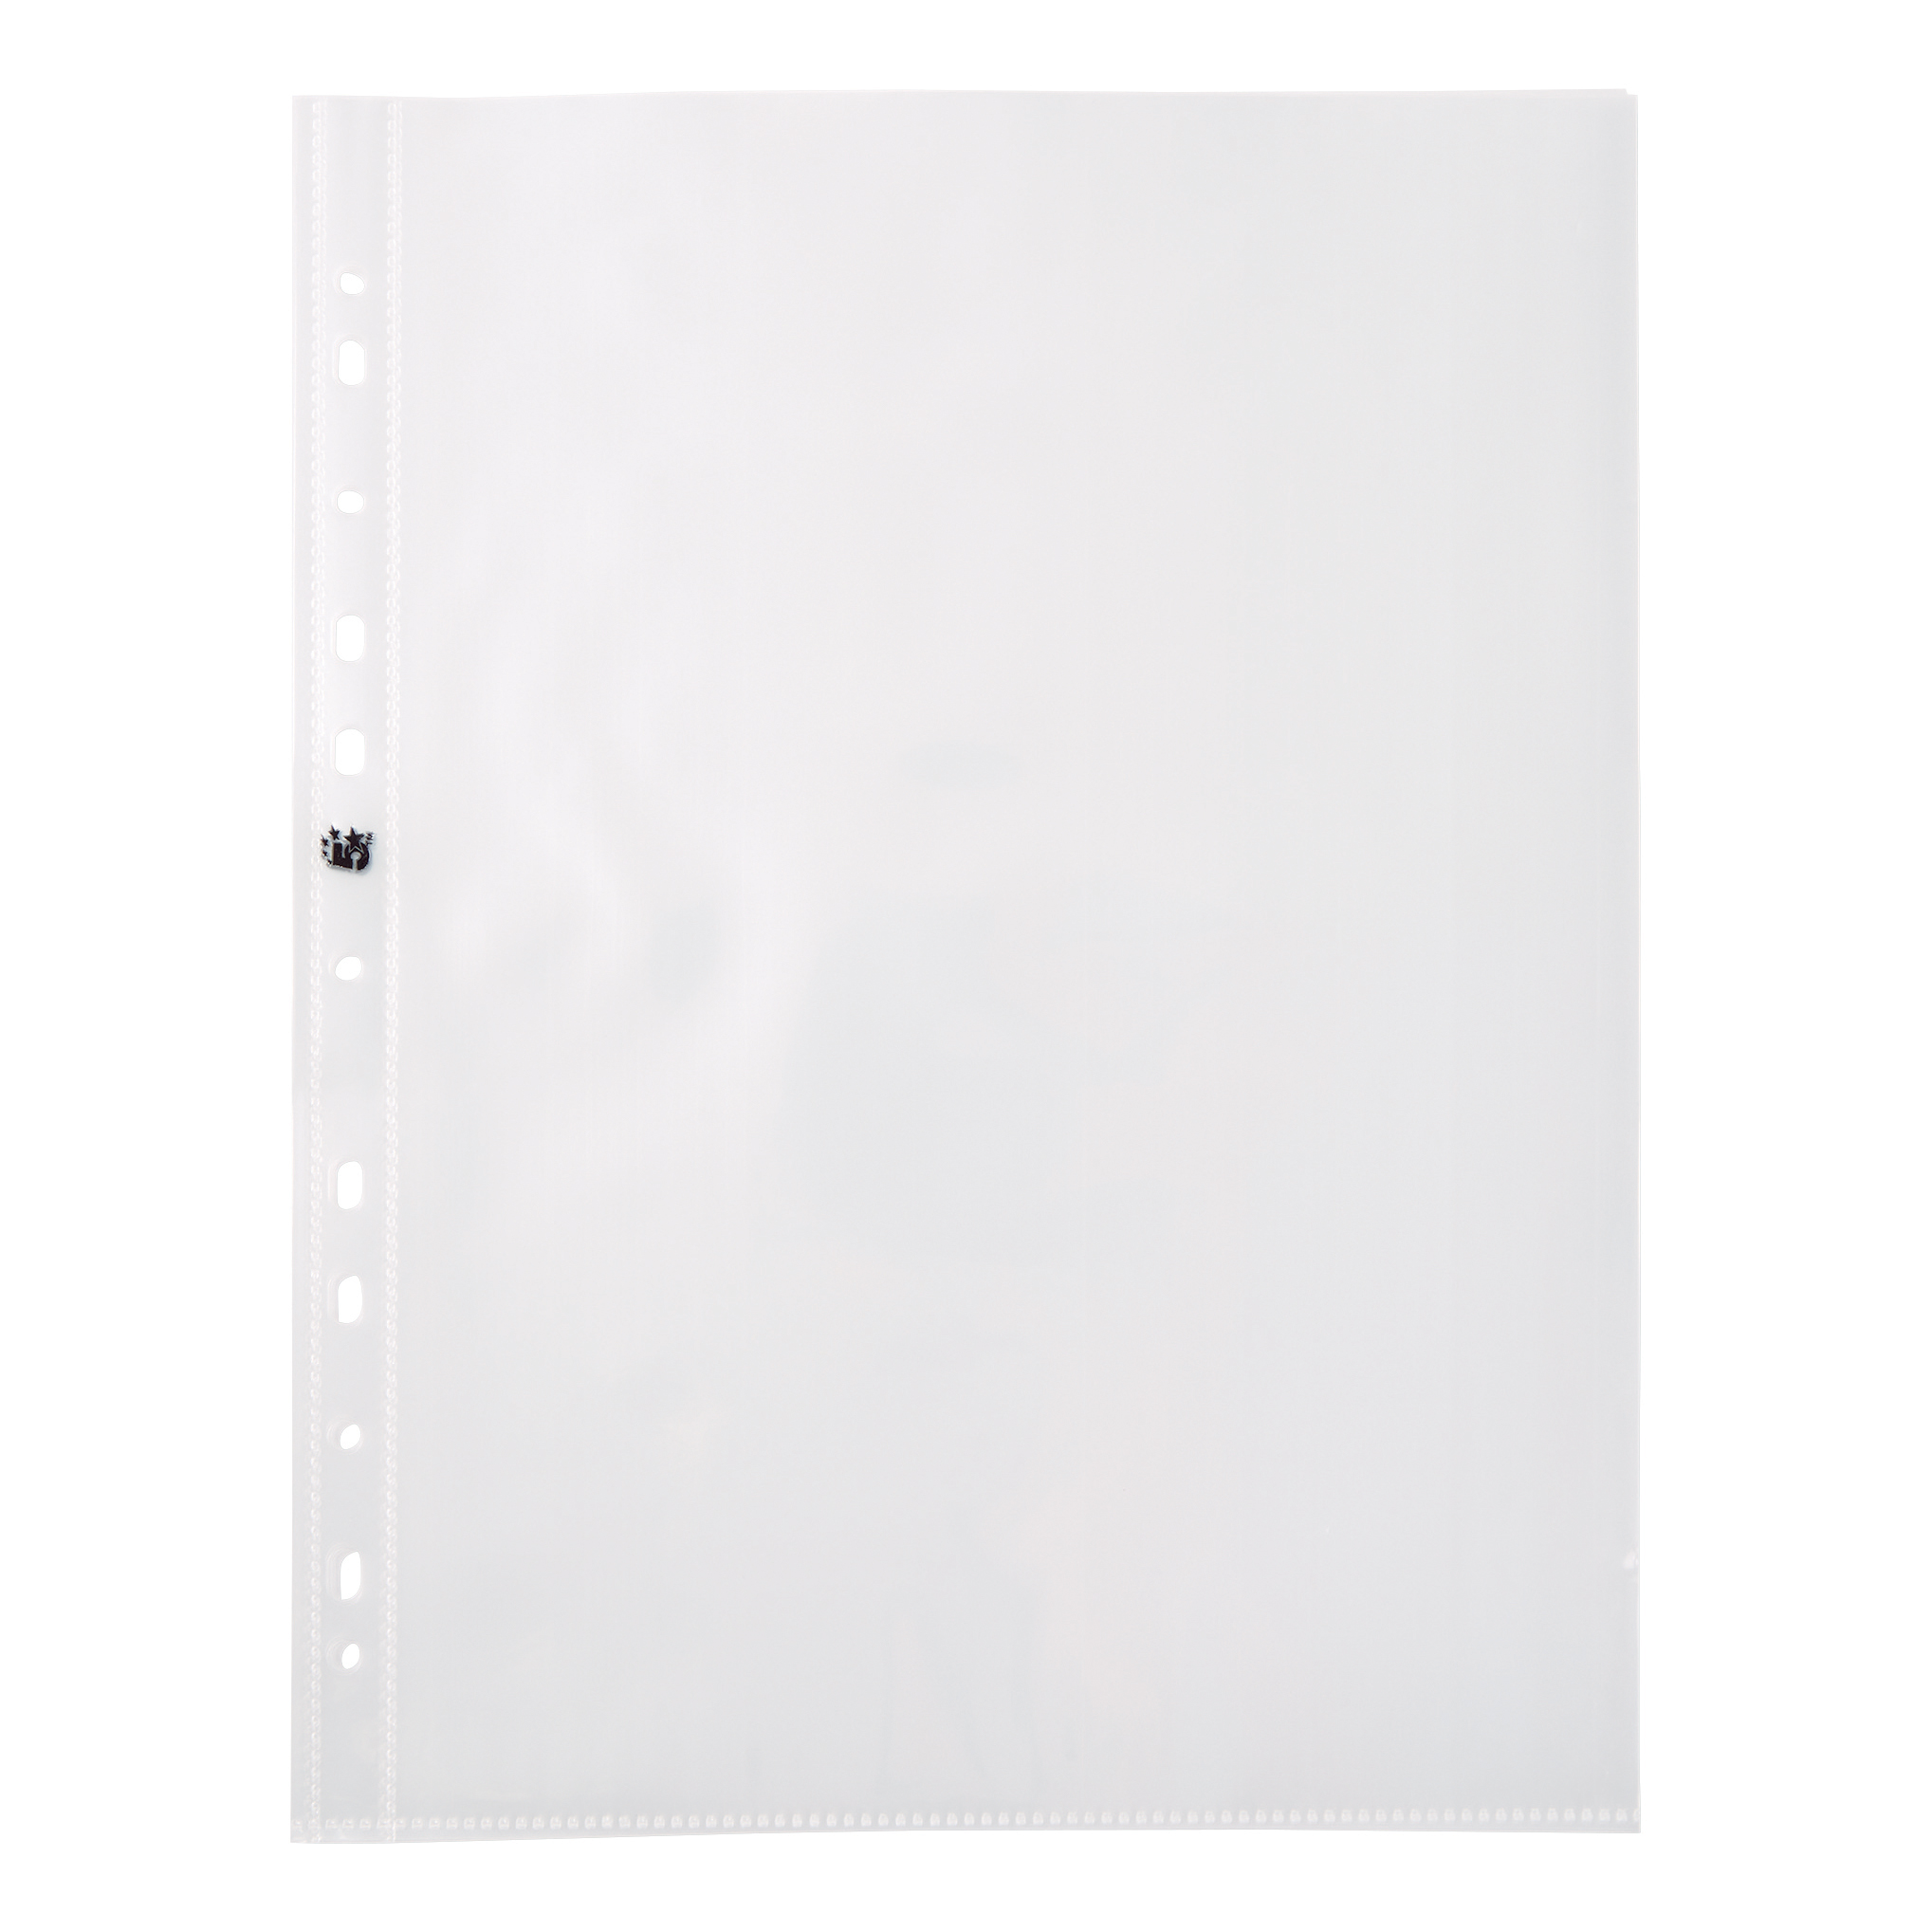 5 Star Elite Presentation Punched Pocket Polypropylene Top-opening 90 Micron A4 Glass Clear [Pack 10]